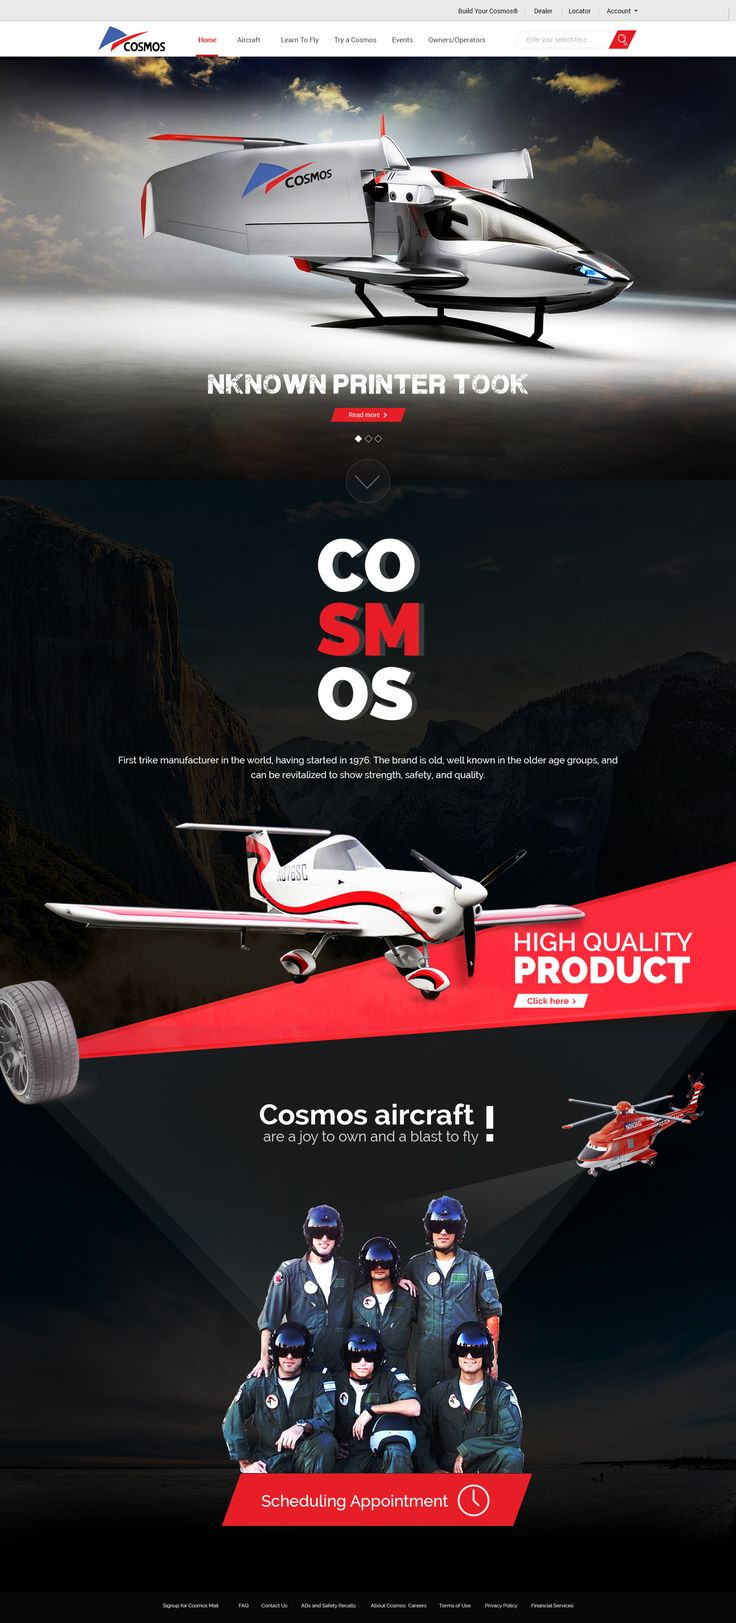 Home page design for Sports Aircraft manufacturing company